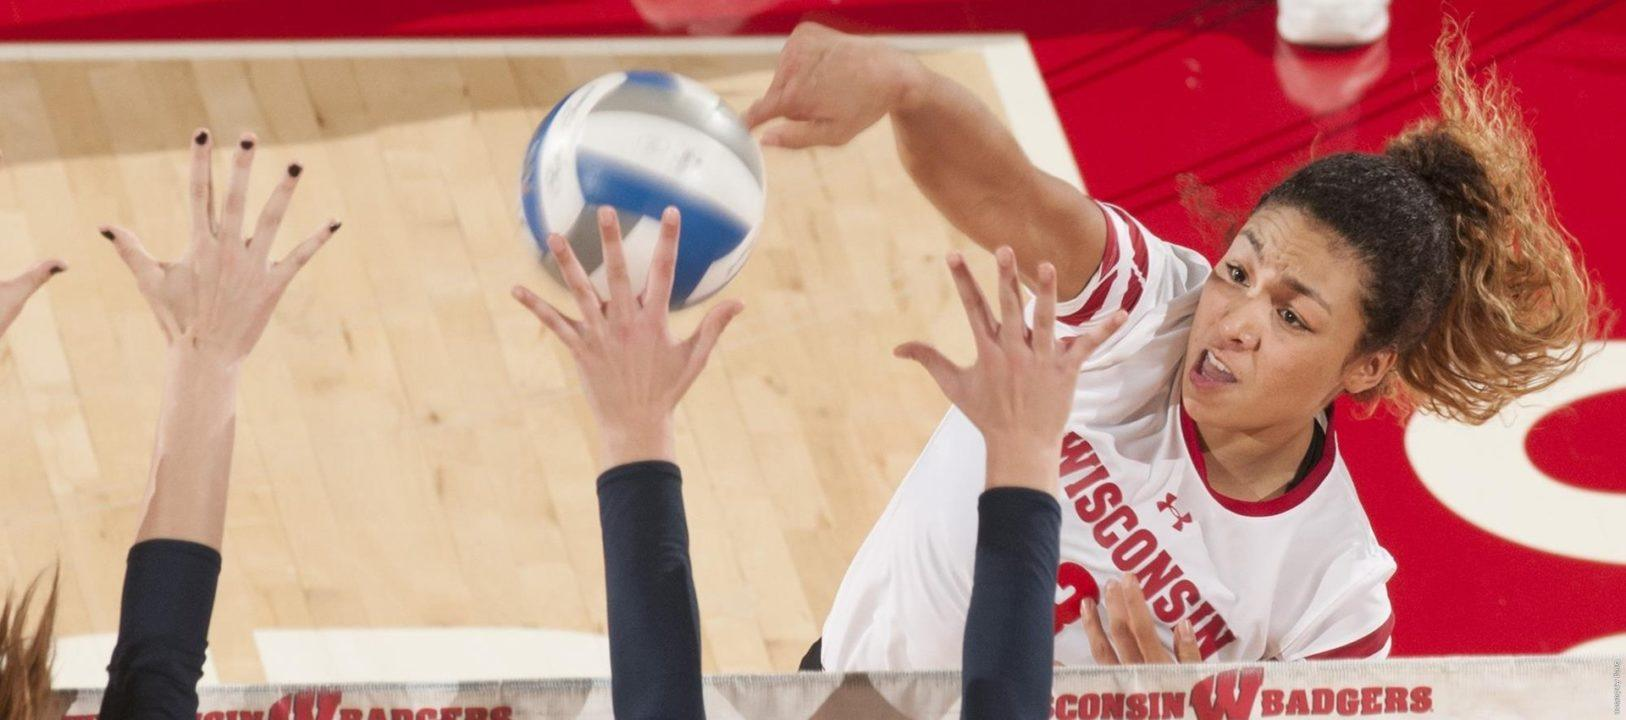 #4 Wisconsin Claims First Victory Over #10 Penn State Since 2011